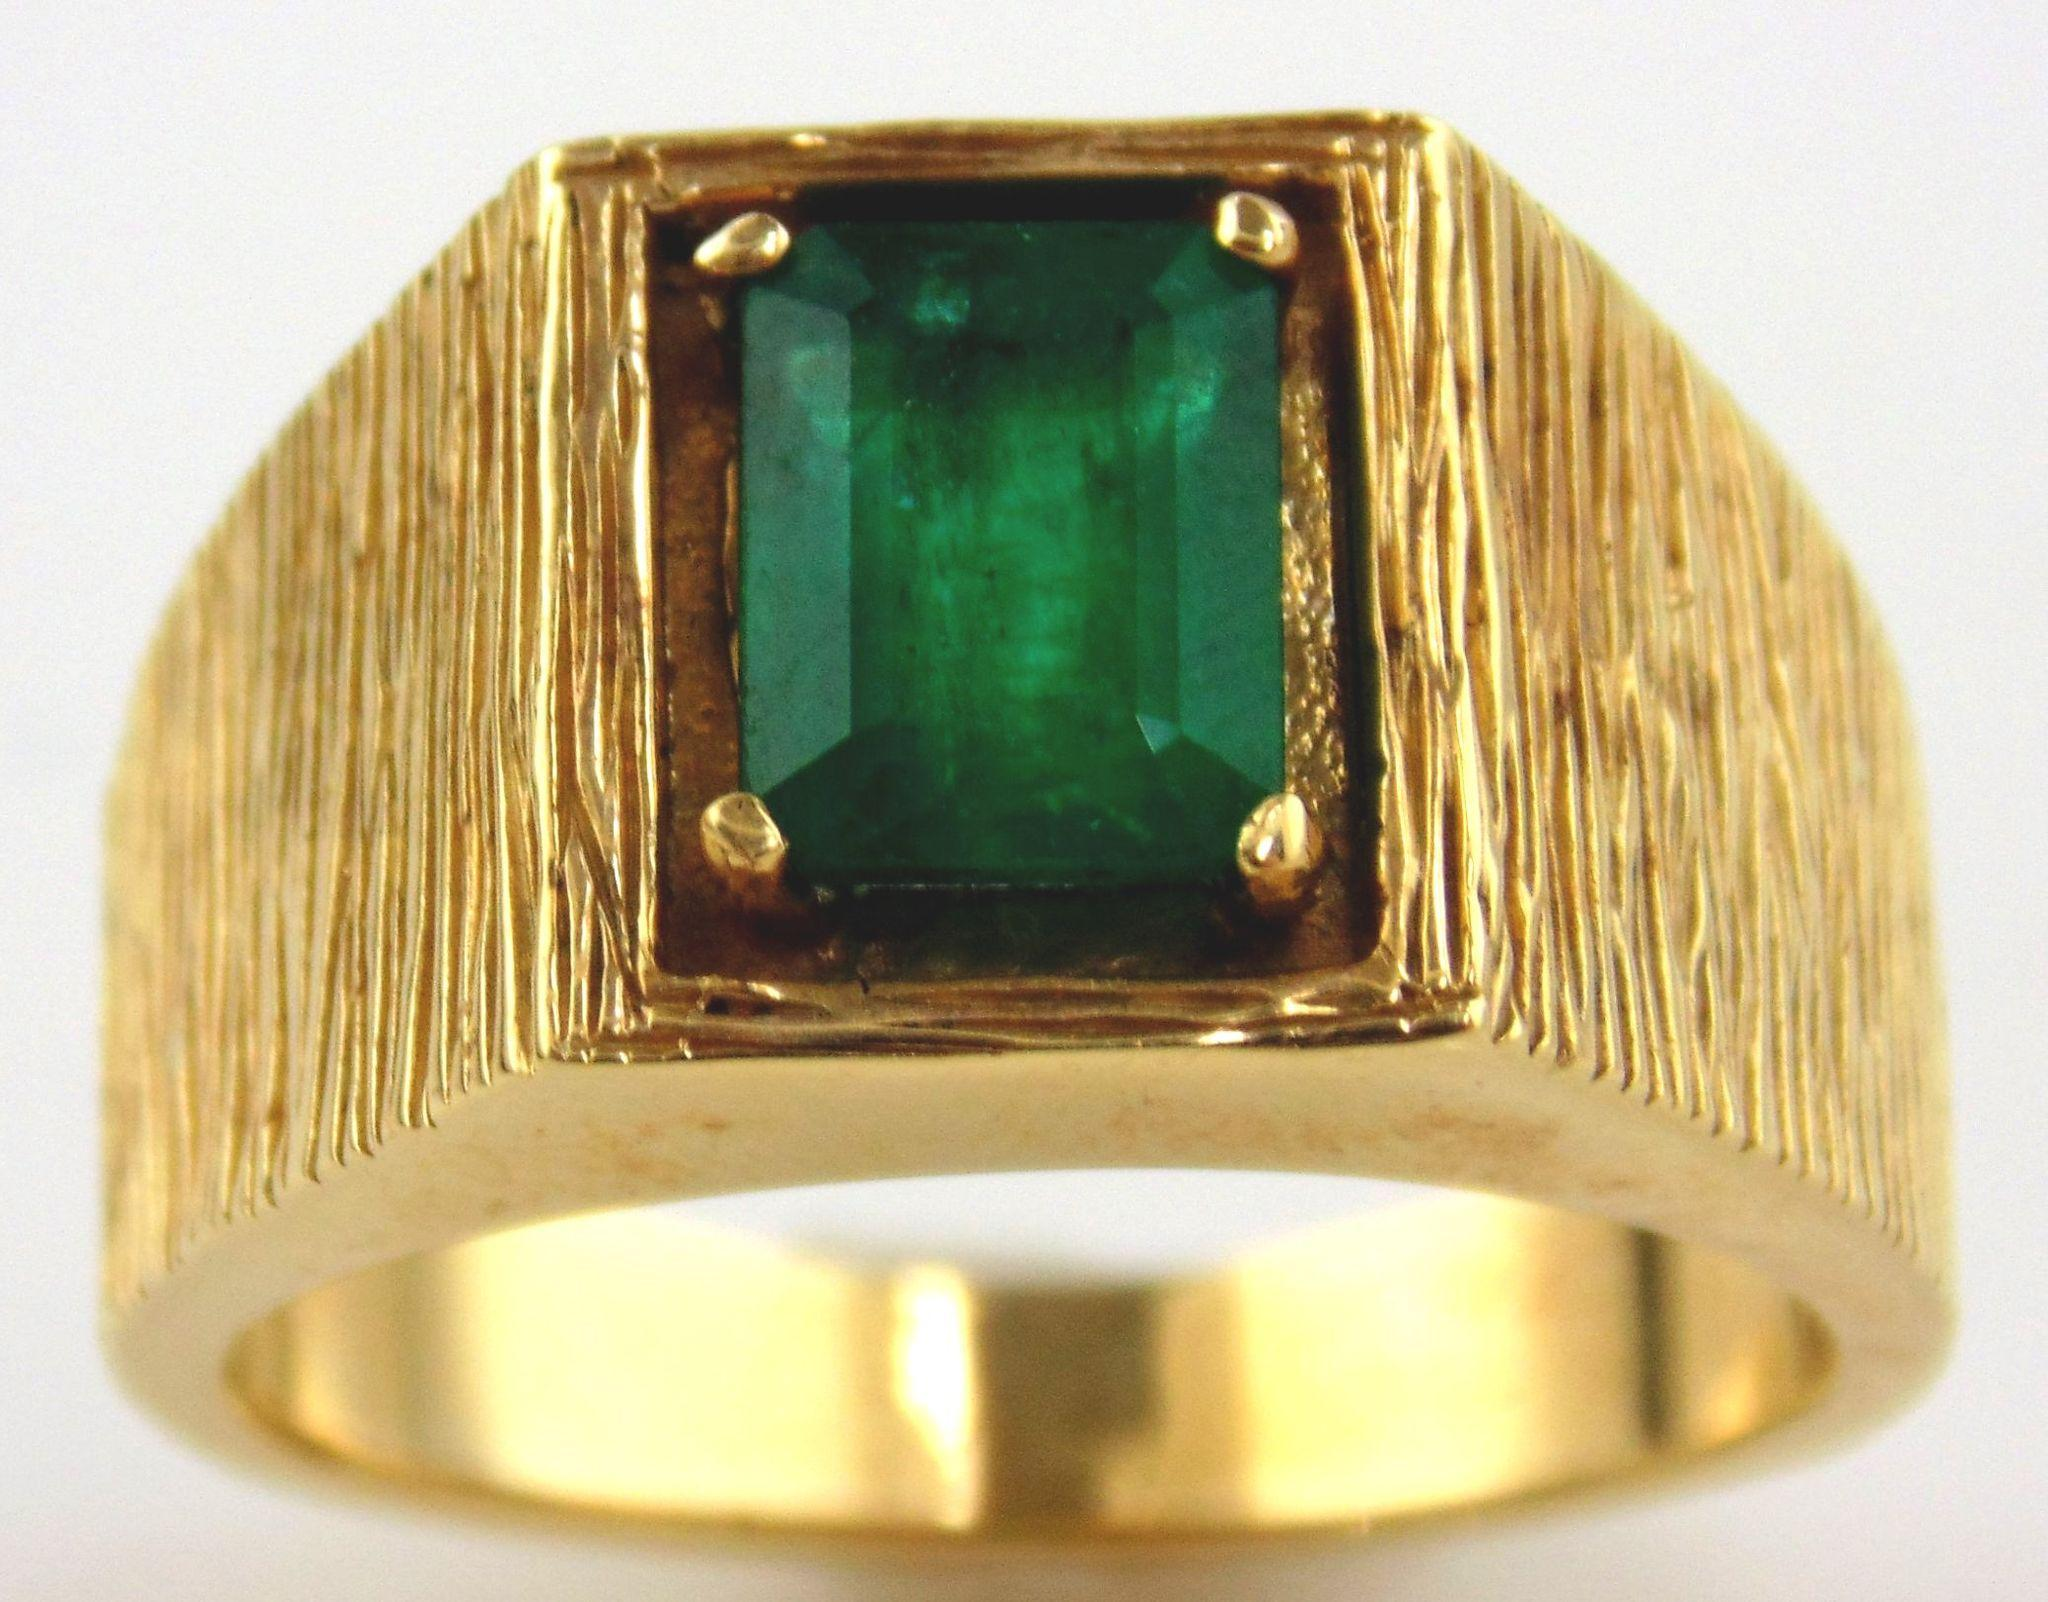 Emerald Man's Ring 14kt Yellow Gold - Size 8 1/2